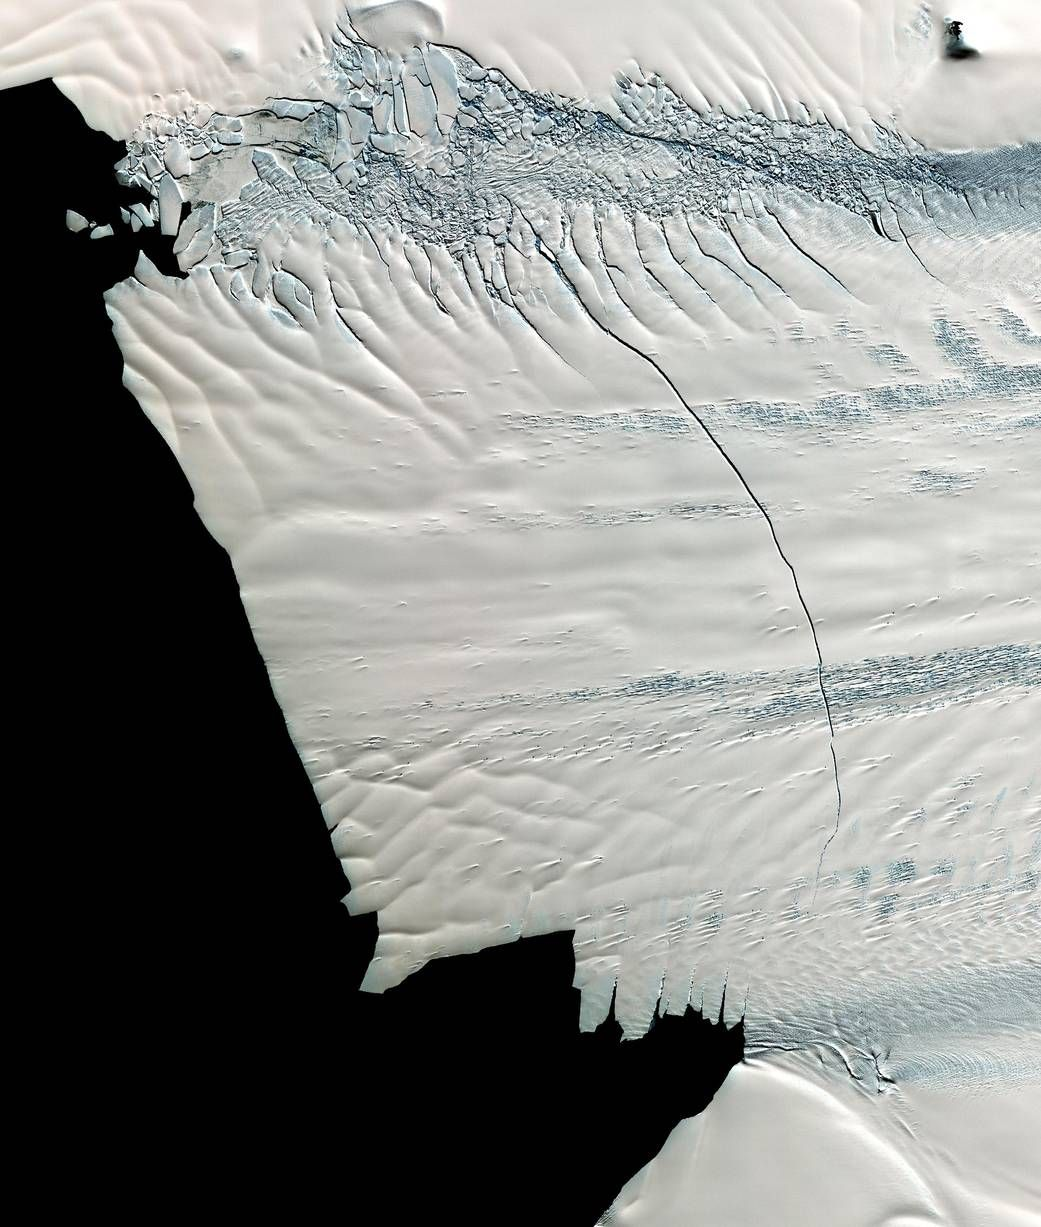 Antarctic Glacier Loses Iceberg 4 Times the Size of Manhattan